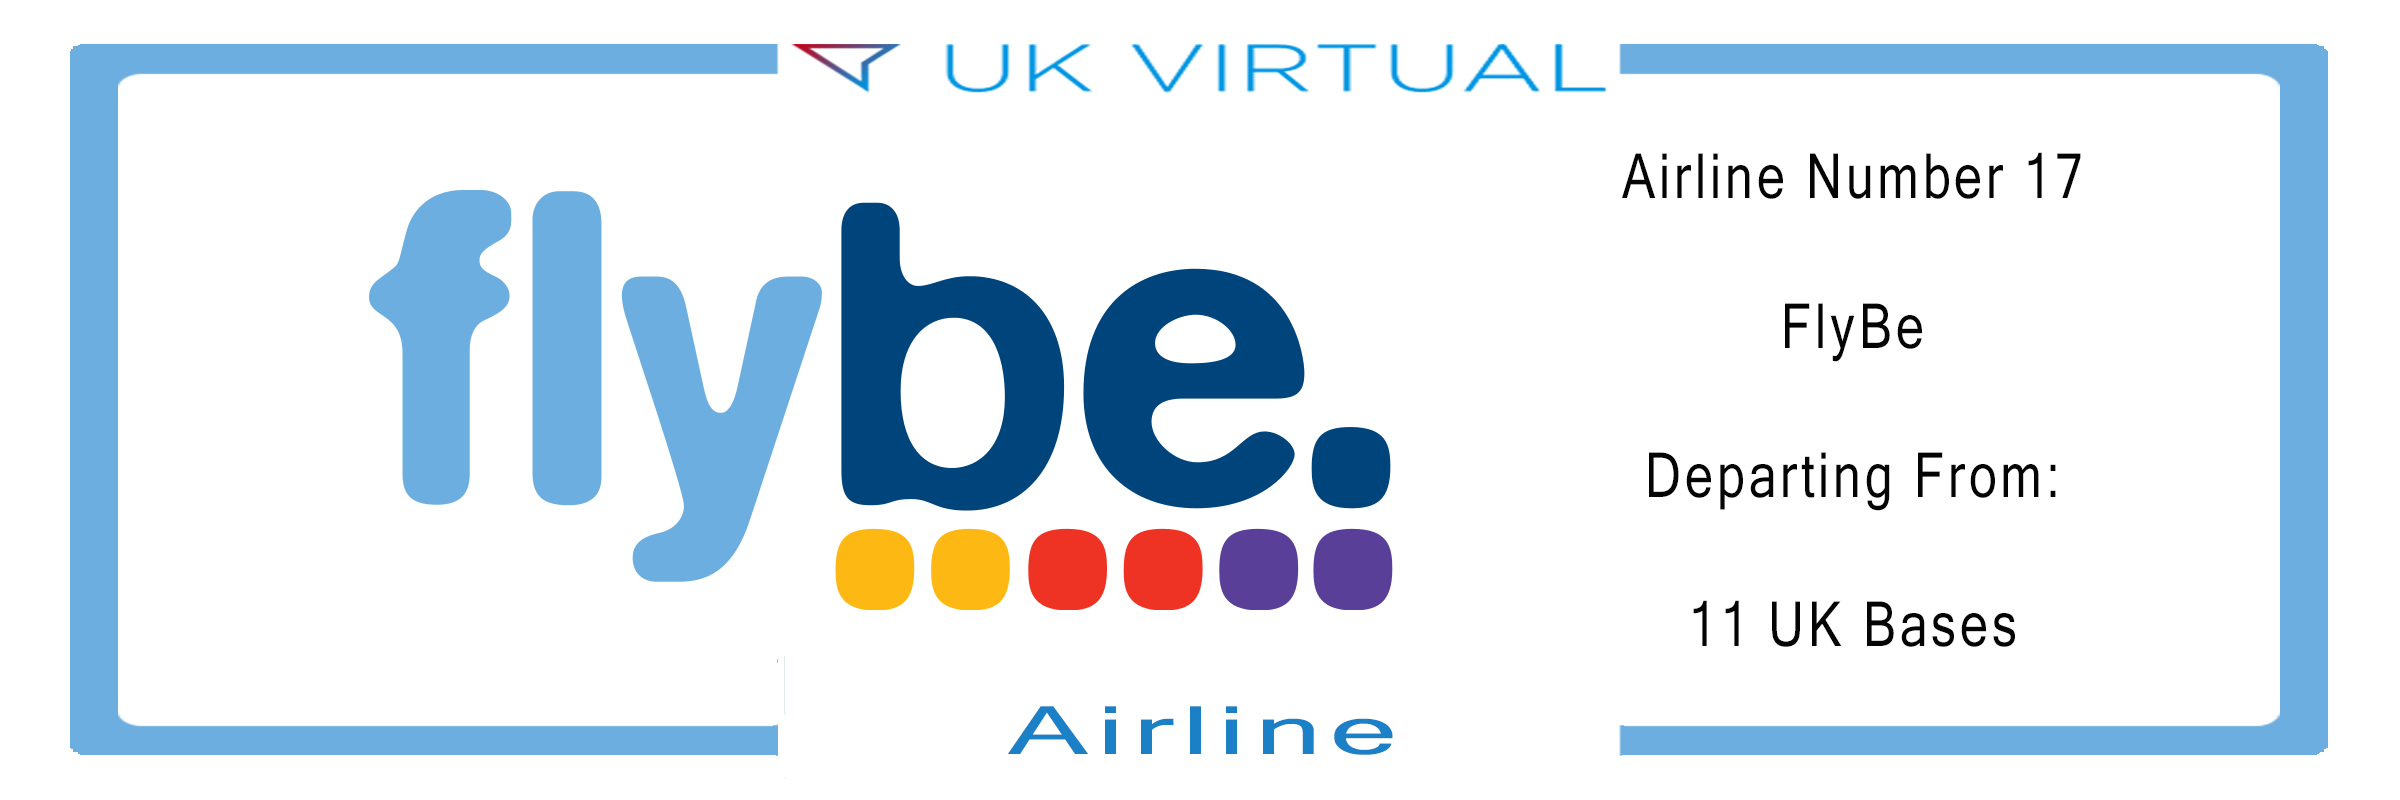 Airline Number 17: FlyBe